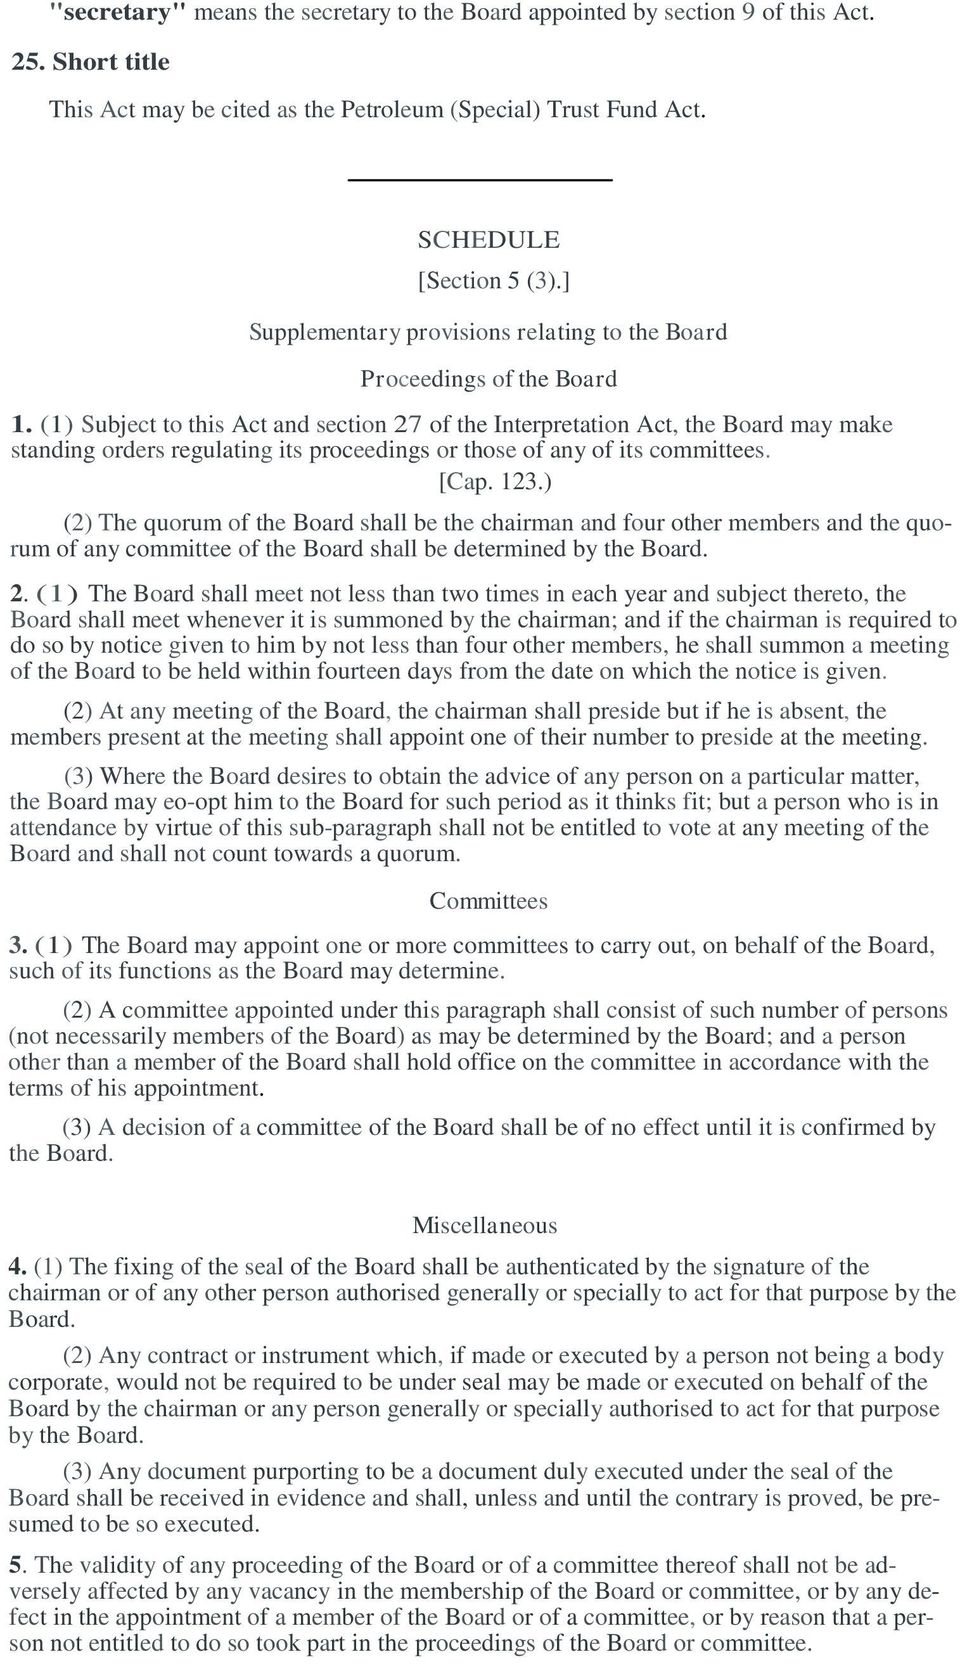 (1) Subject to this Act and section 27 of the Interpretation Act, the Board may make standing orders regulating its proceedings or those of any of its committees. [Cap. 123.